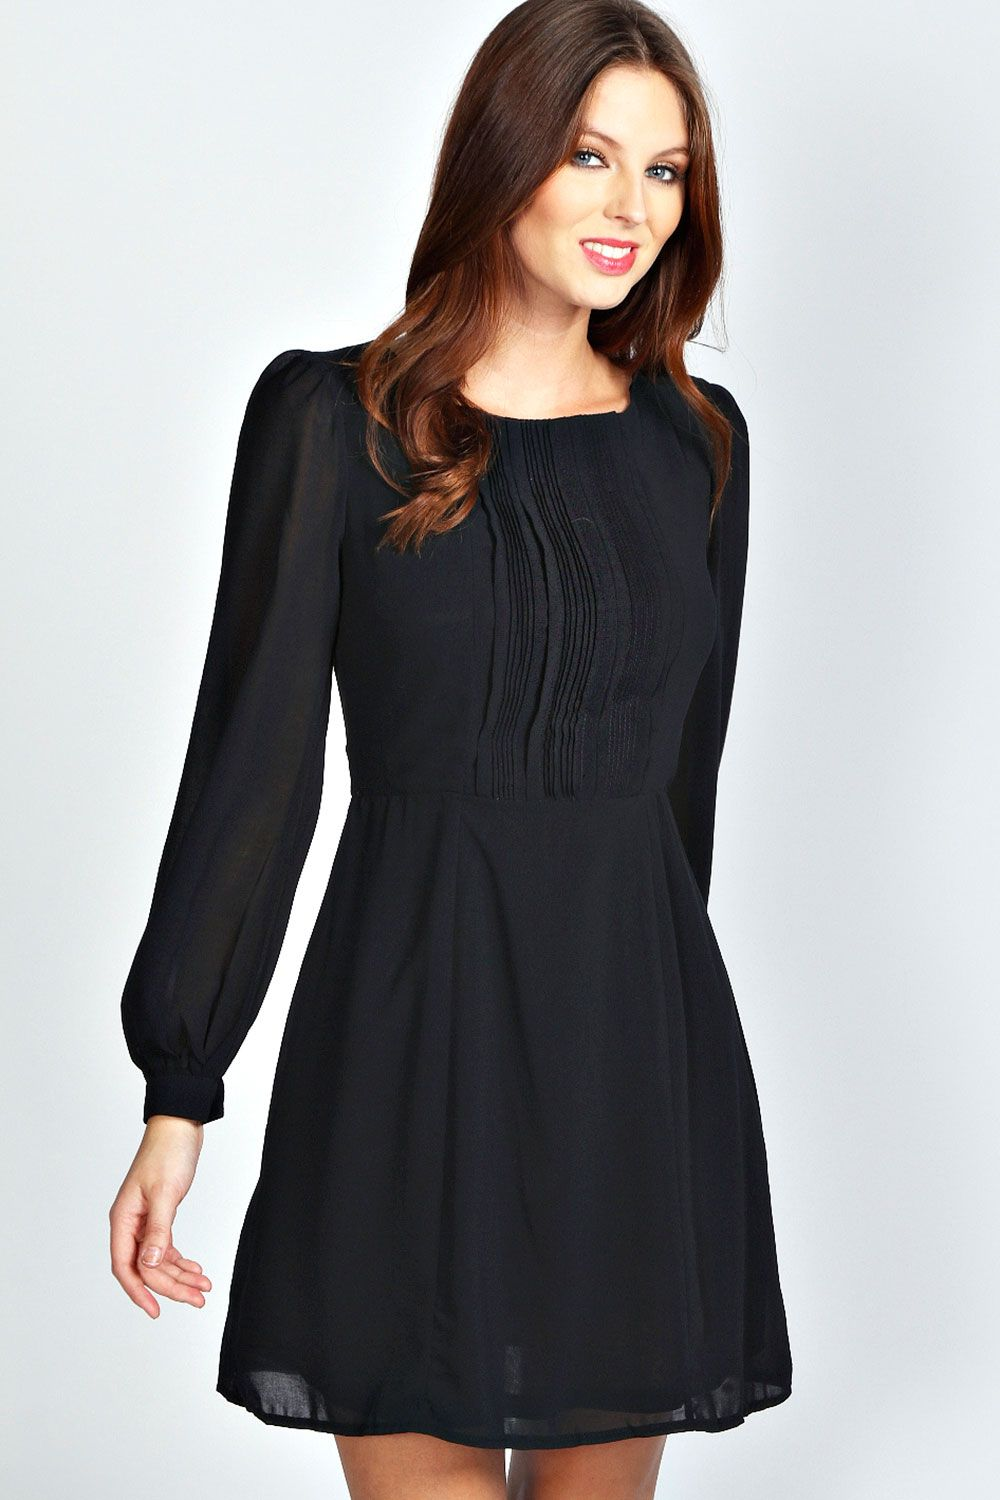 Isabel long sleeve chiffon fit and flare dress fit and